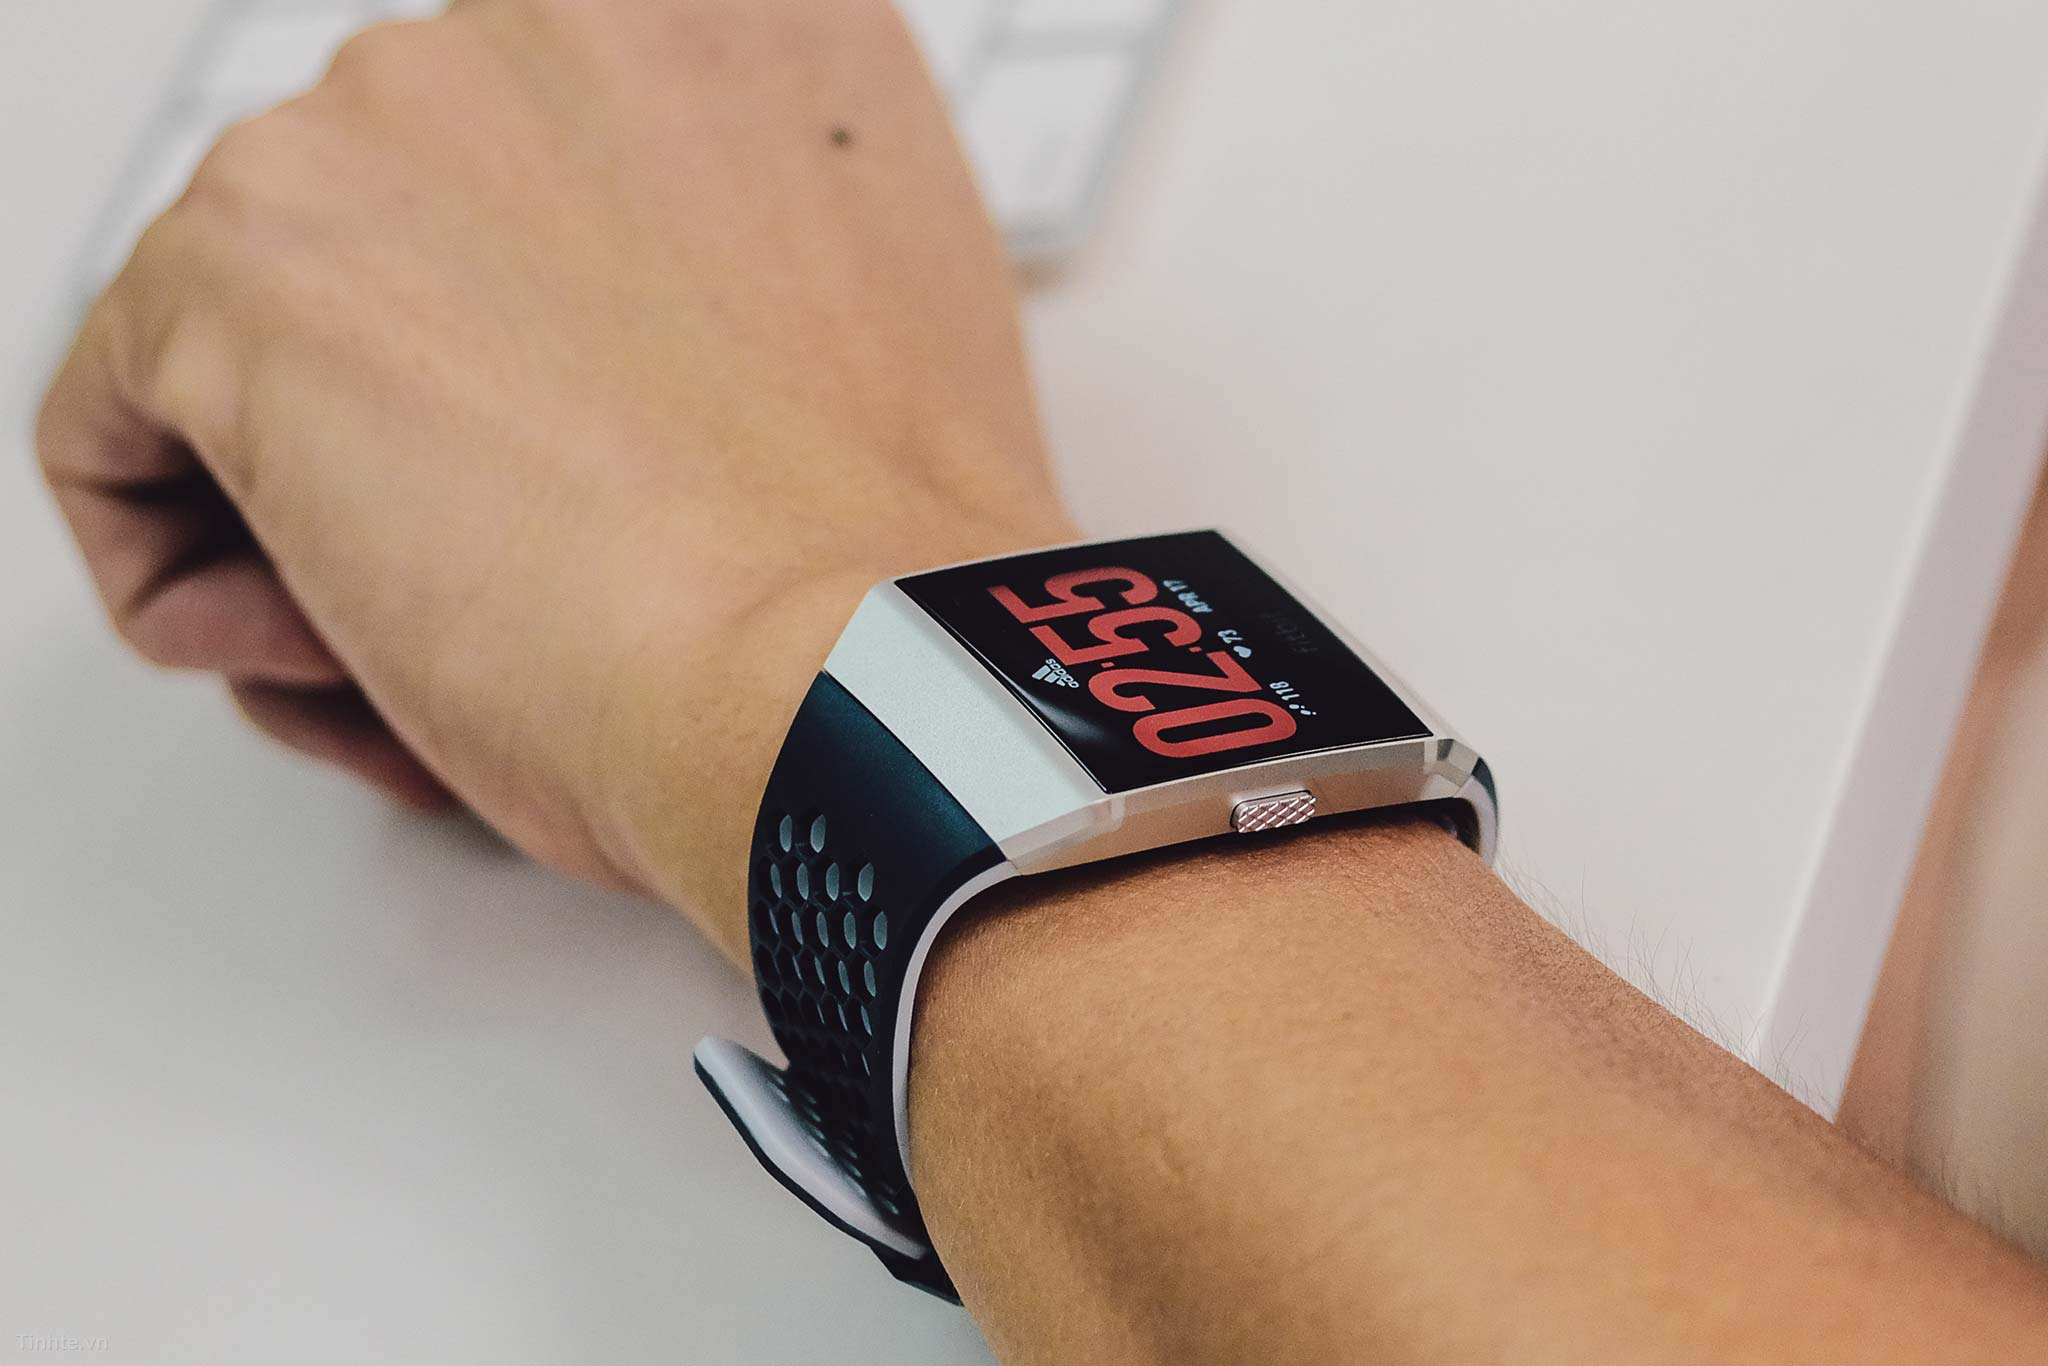 4290573_tinhte_tren_tay_fitbit_ionic_adidas_special_edition_9.jpg